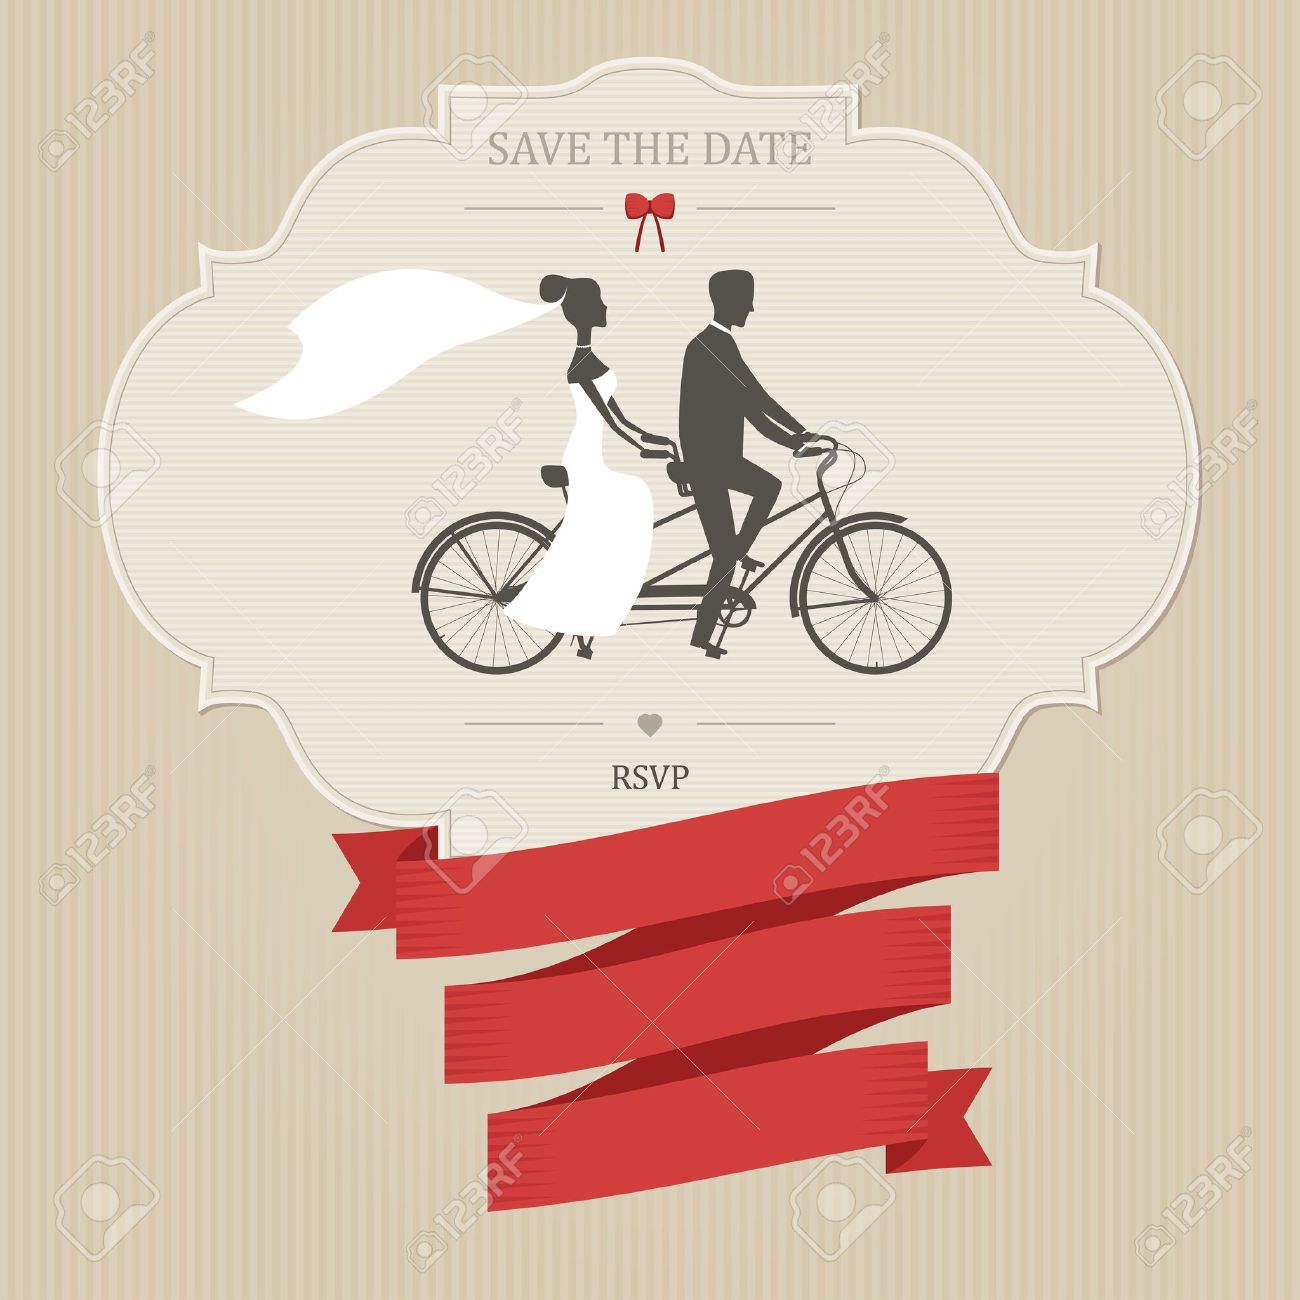 Vintage Wedding Invitation With Tandem Bicycle And Place For ...